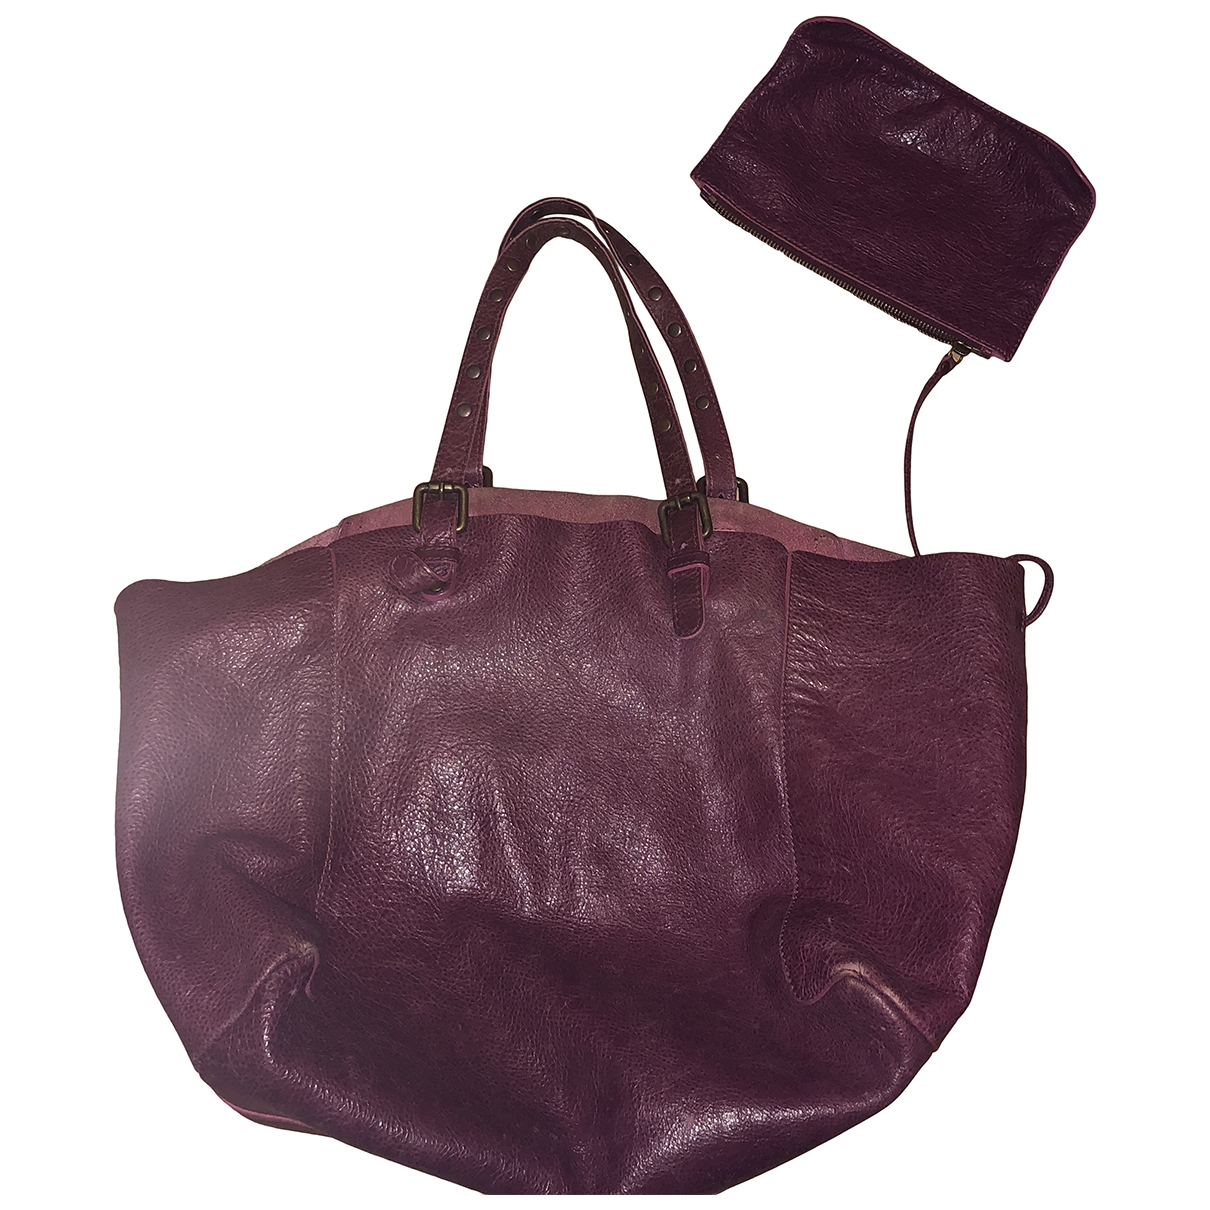 Gerard Darel \N Burgundy Leather handbag for Women \N